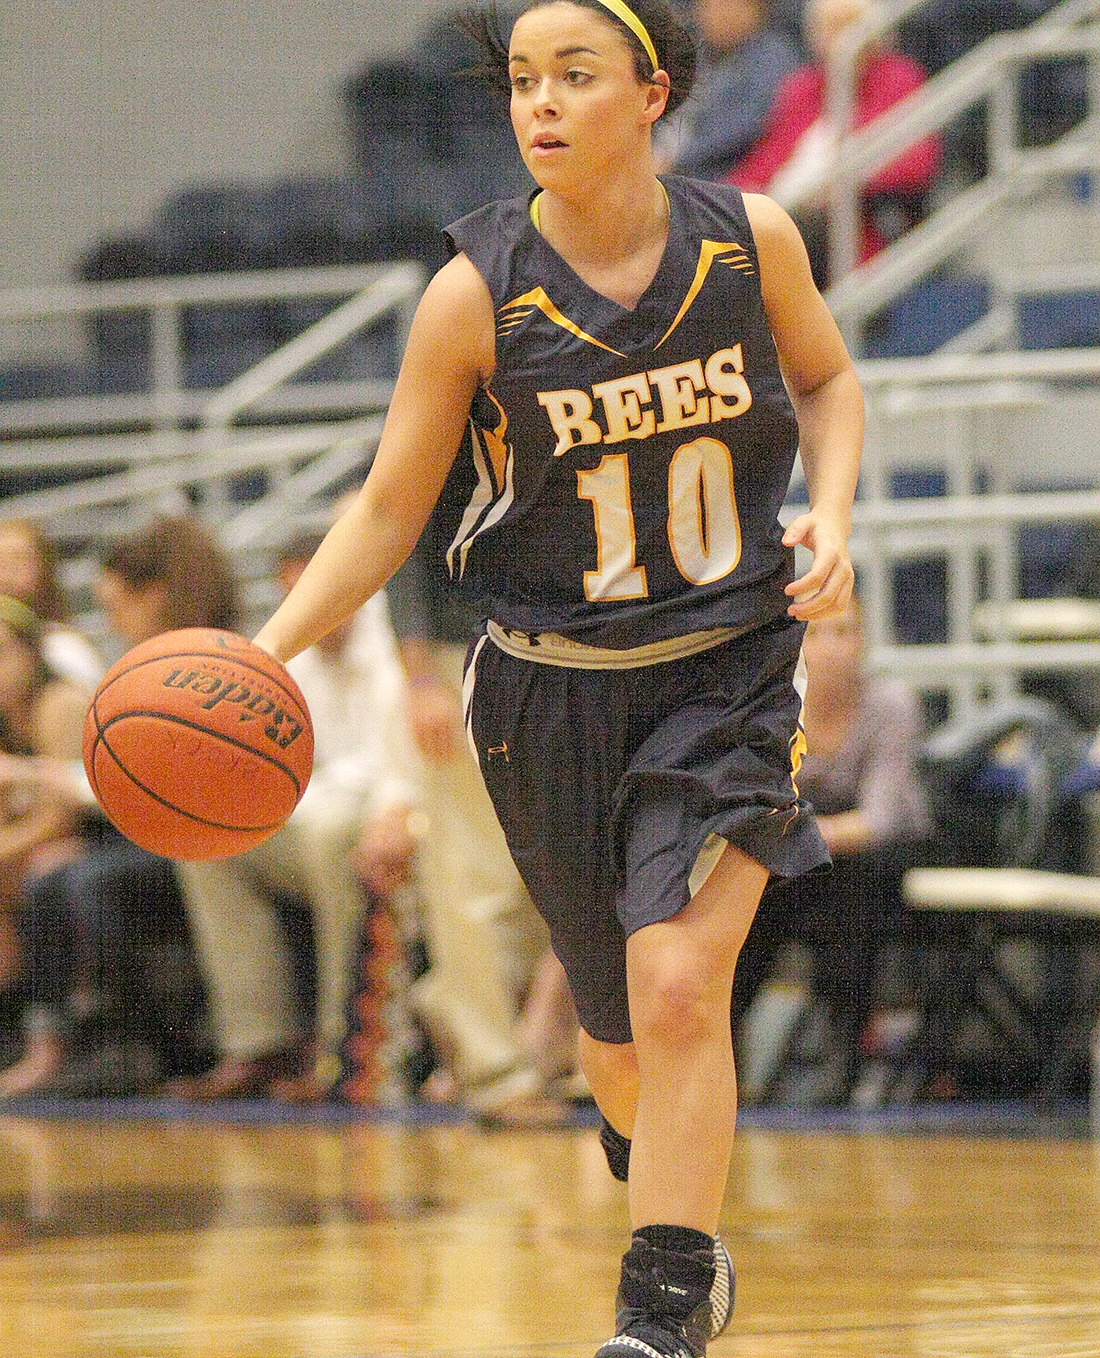 Breanna Wooley, a senior guard, led Stephenville with 13 points Thursday. She knocked down four 3-pointers in the area-round playoff against Decatur at Brock High School. || Photo by BRAD KEITH